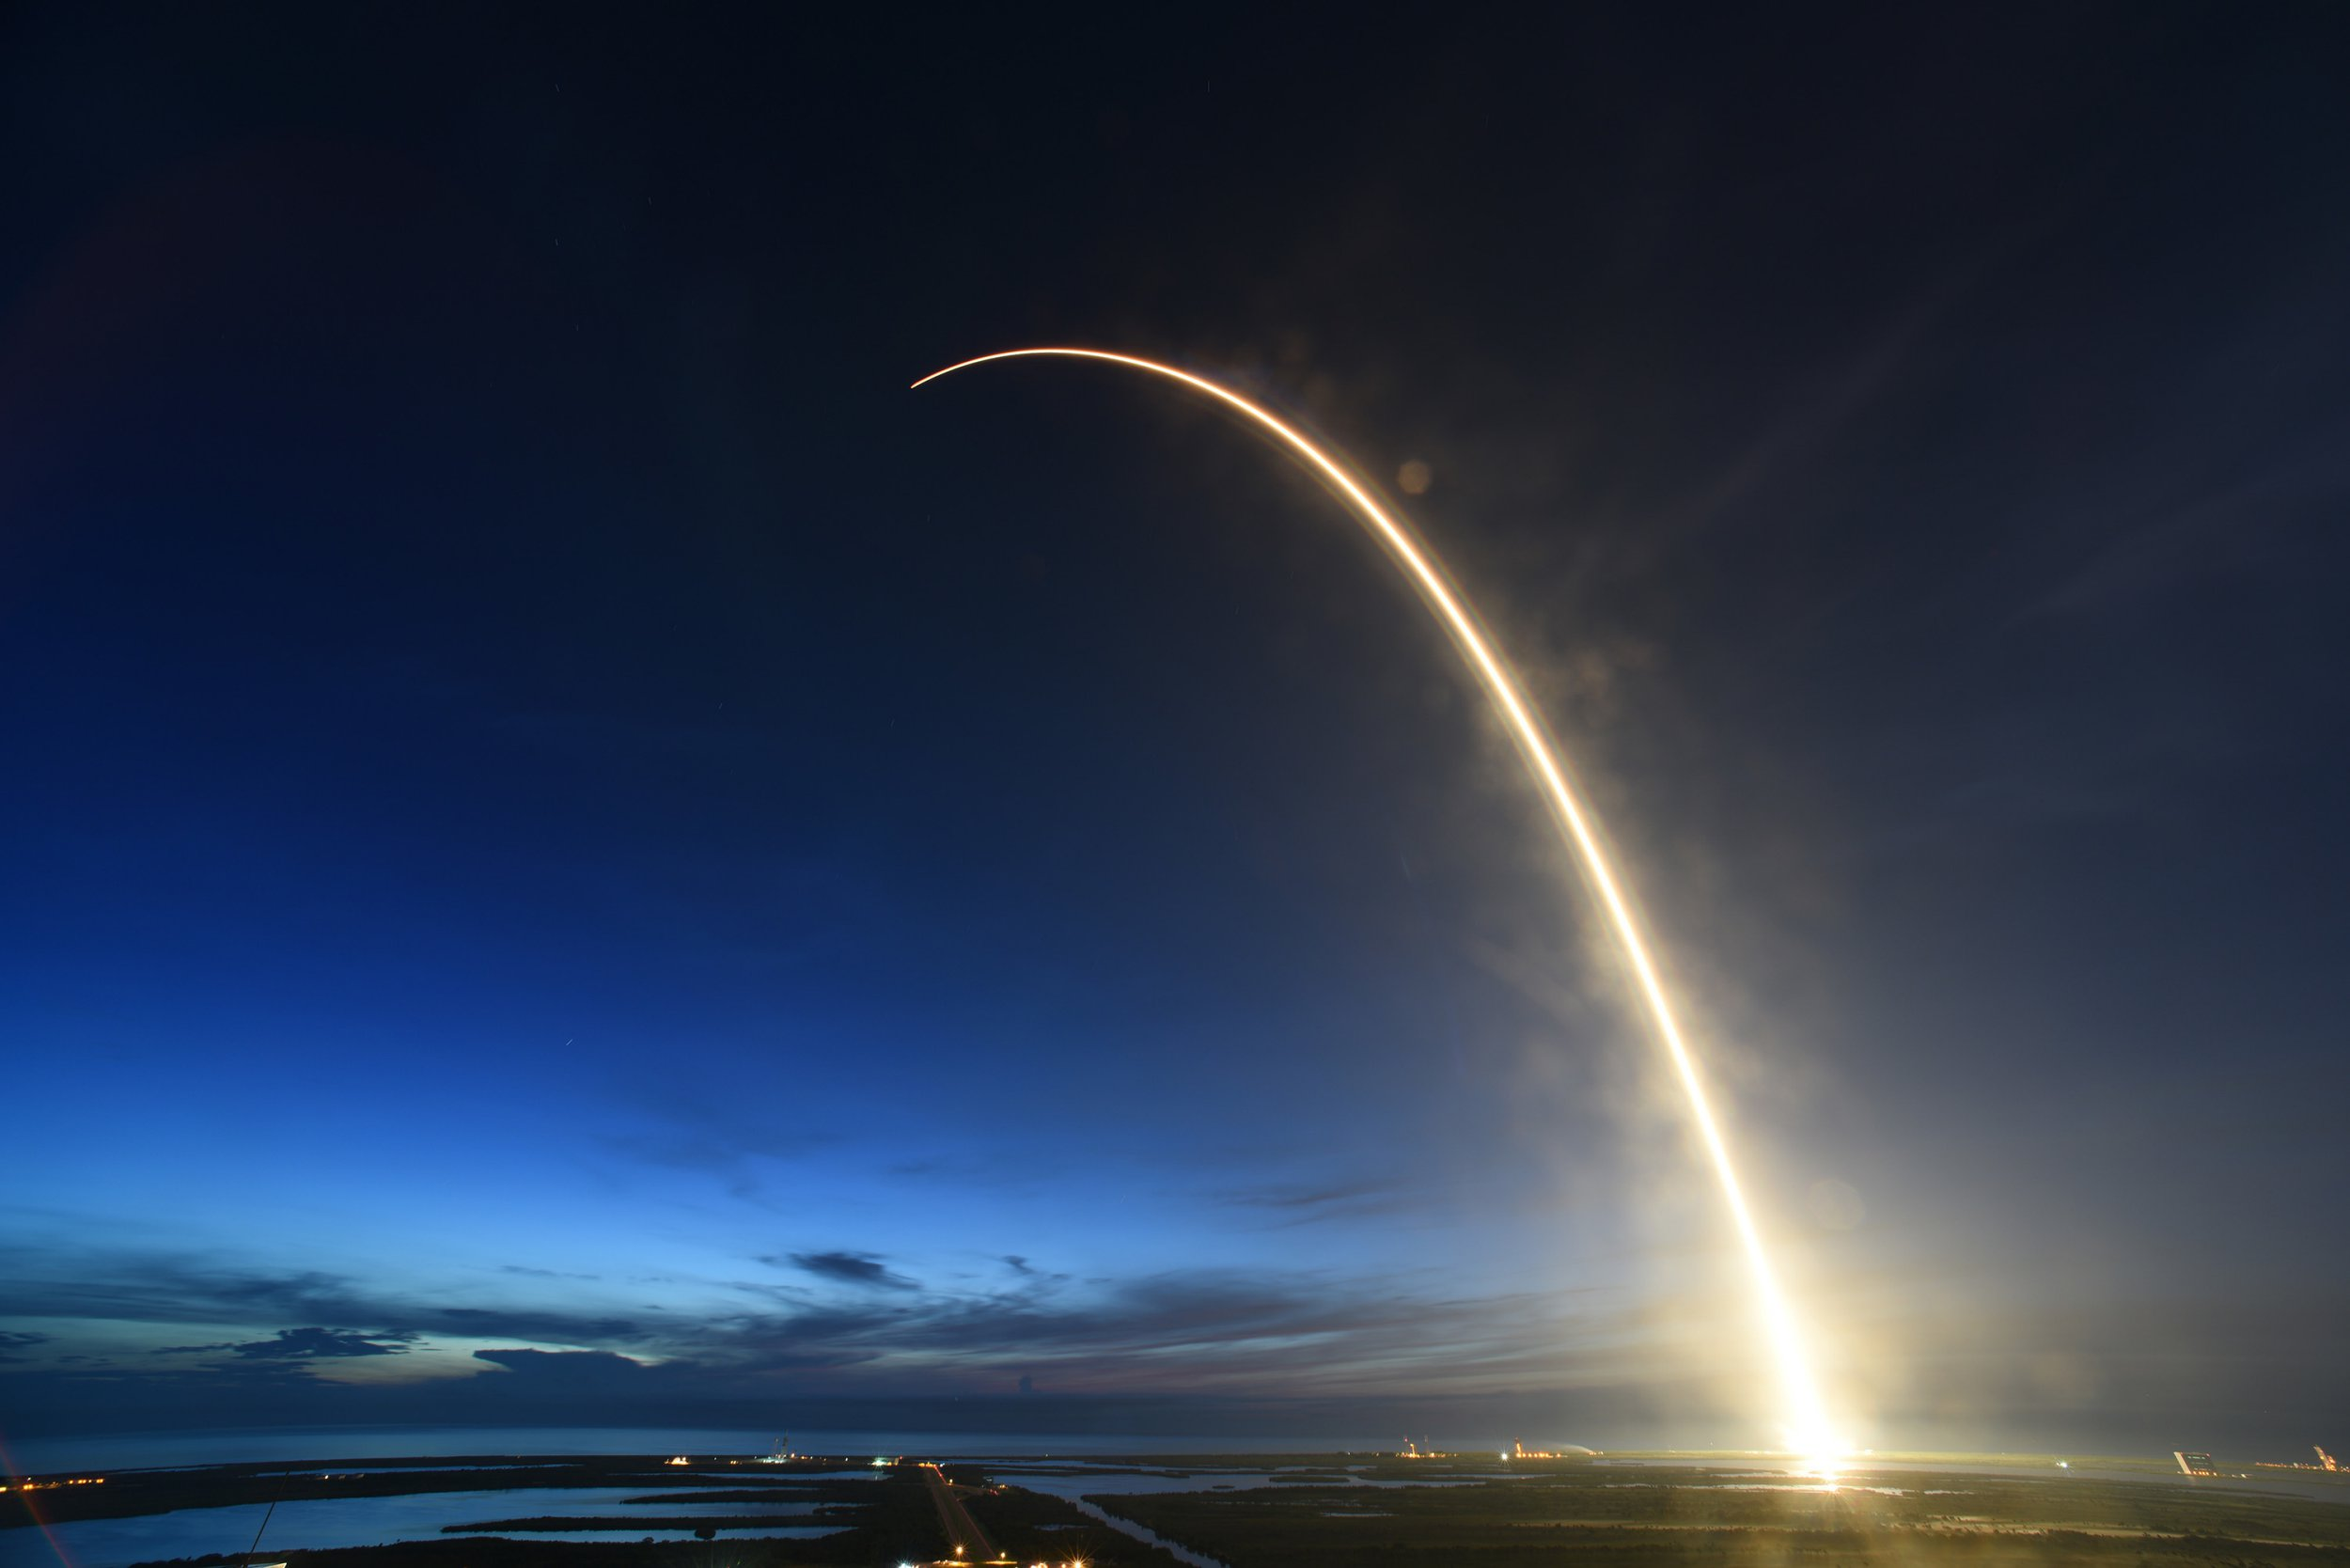 Human health not affected by long-term space travel, says Nasa